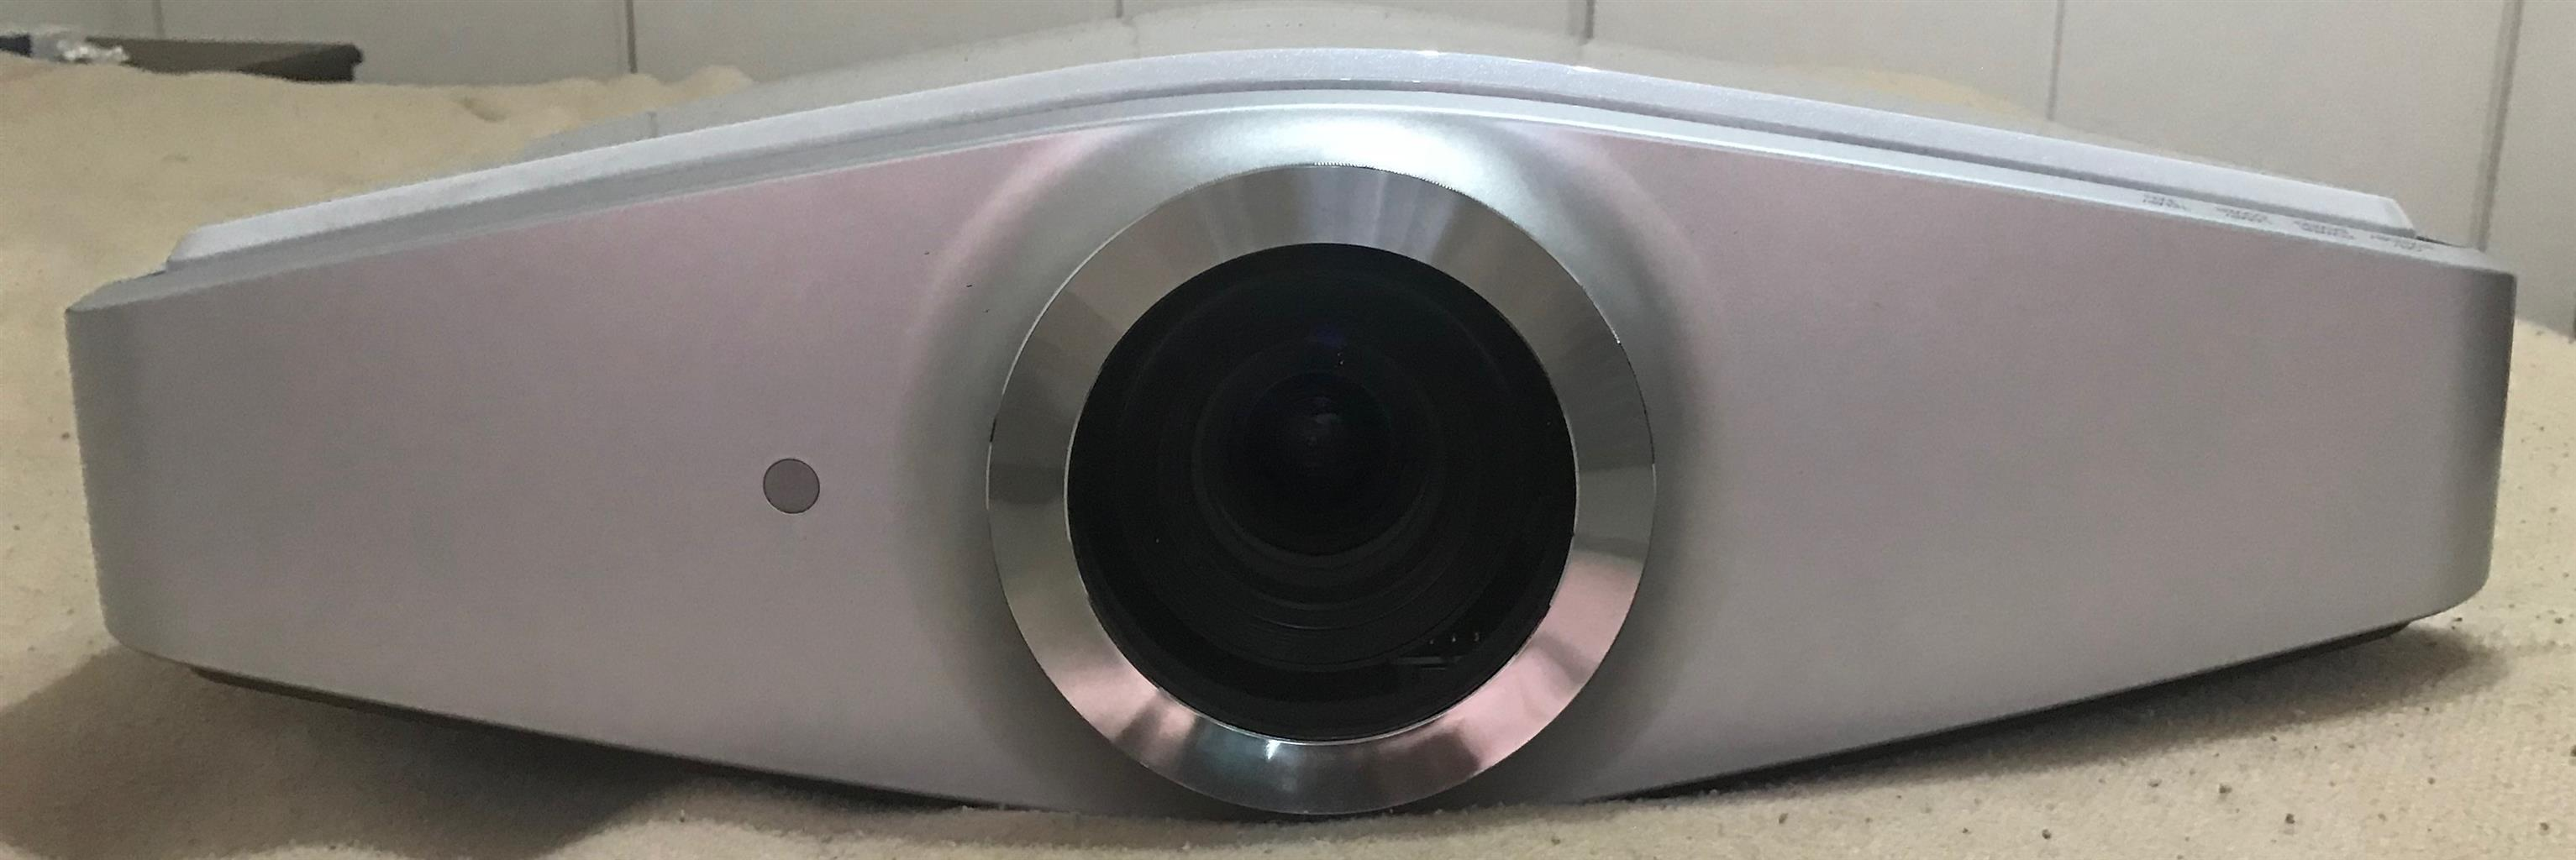 Sony VPL-VW100 1080p SXRD Front Projector